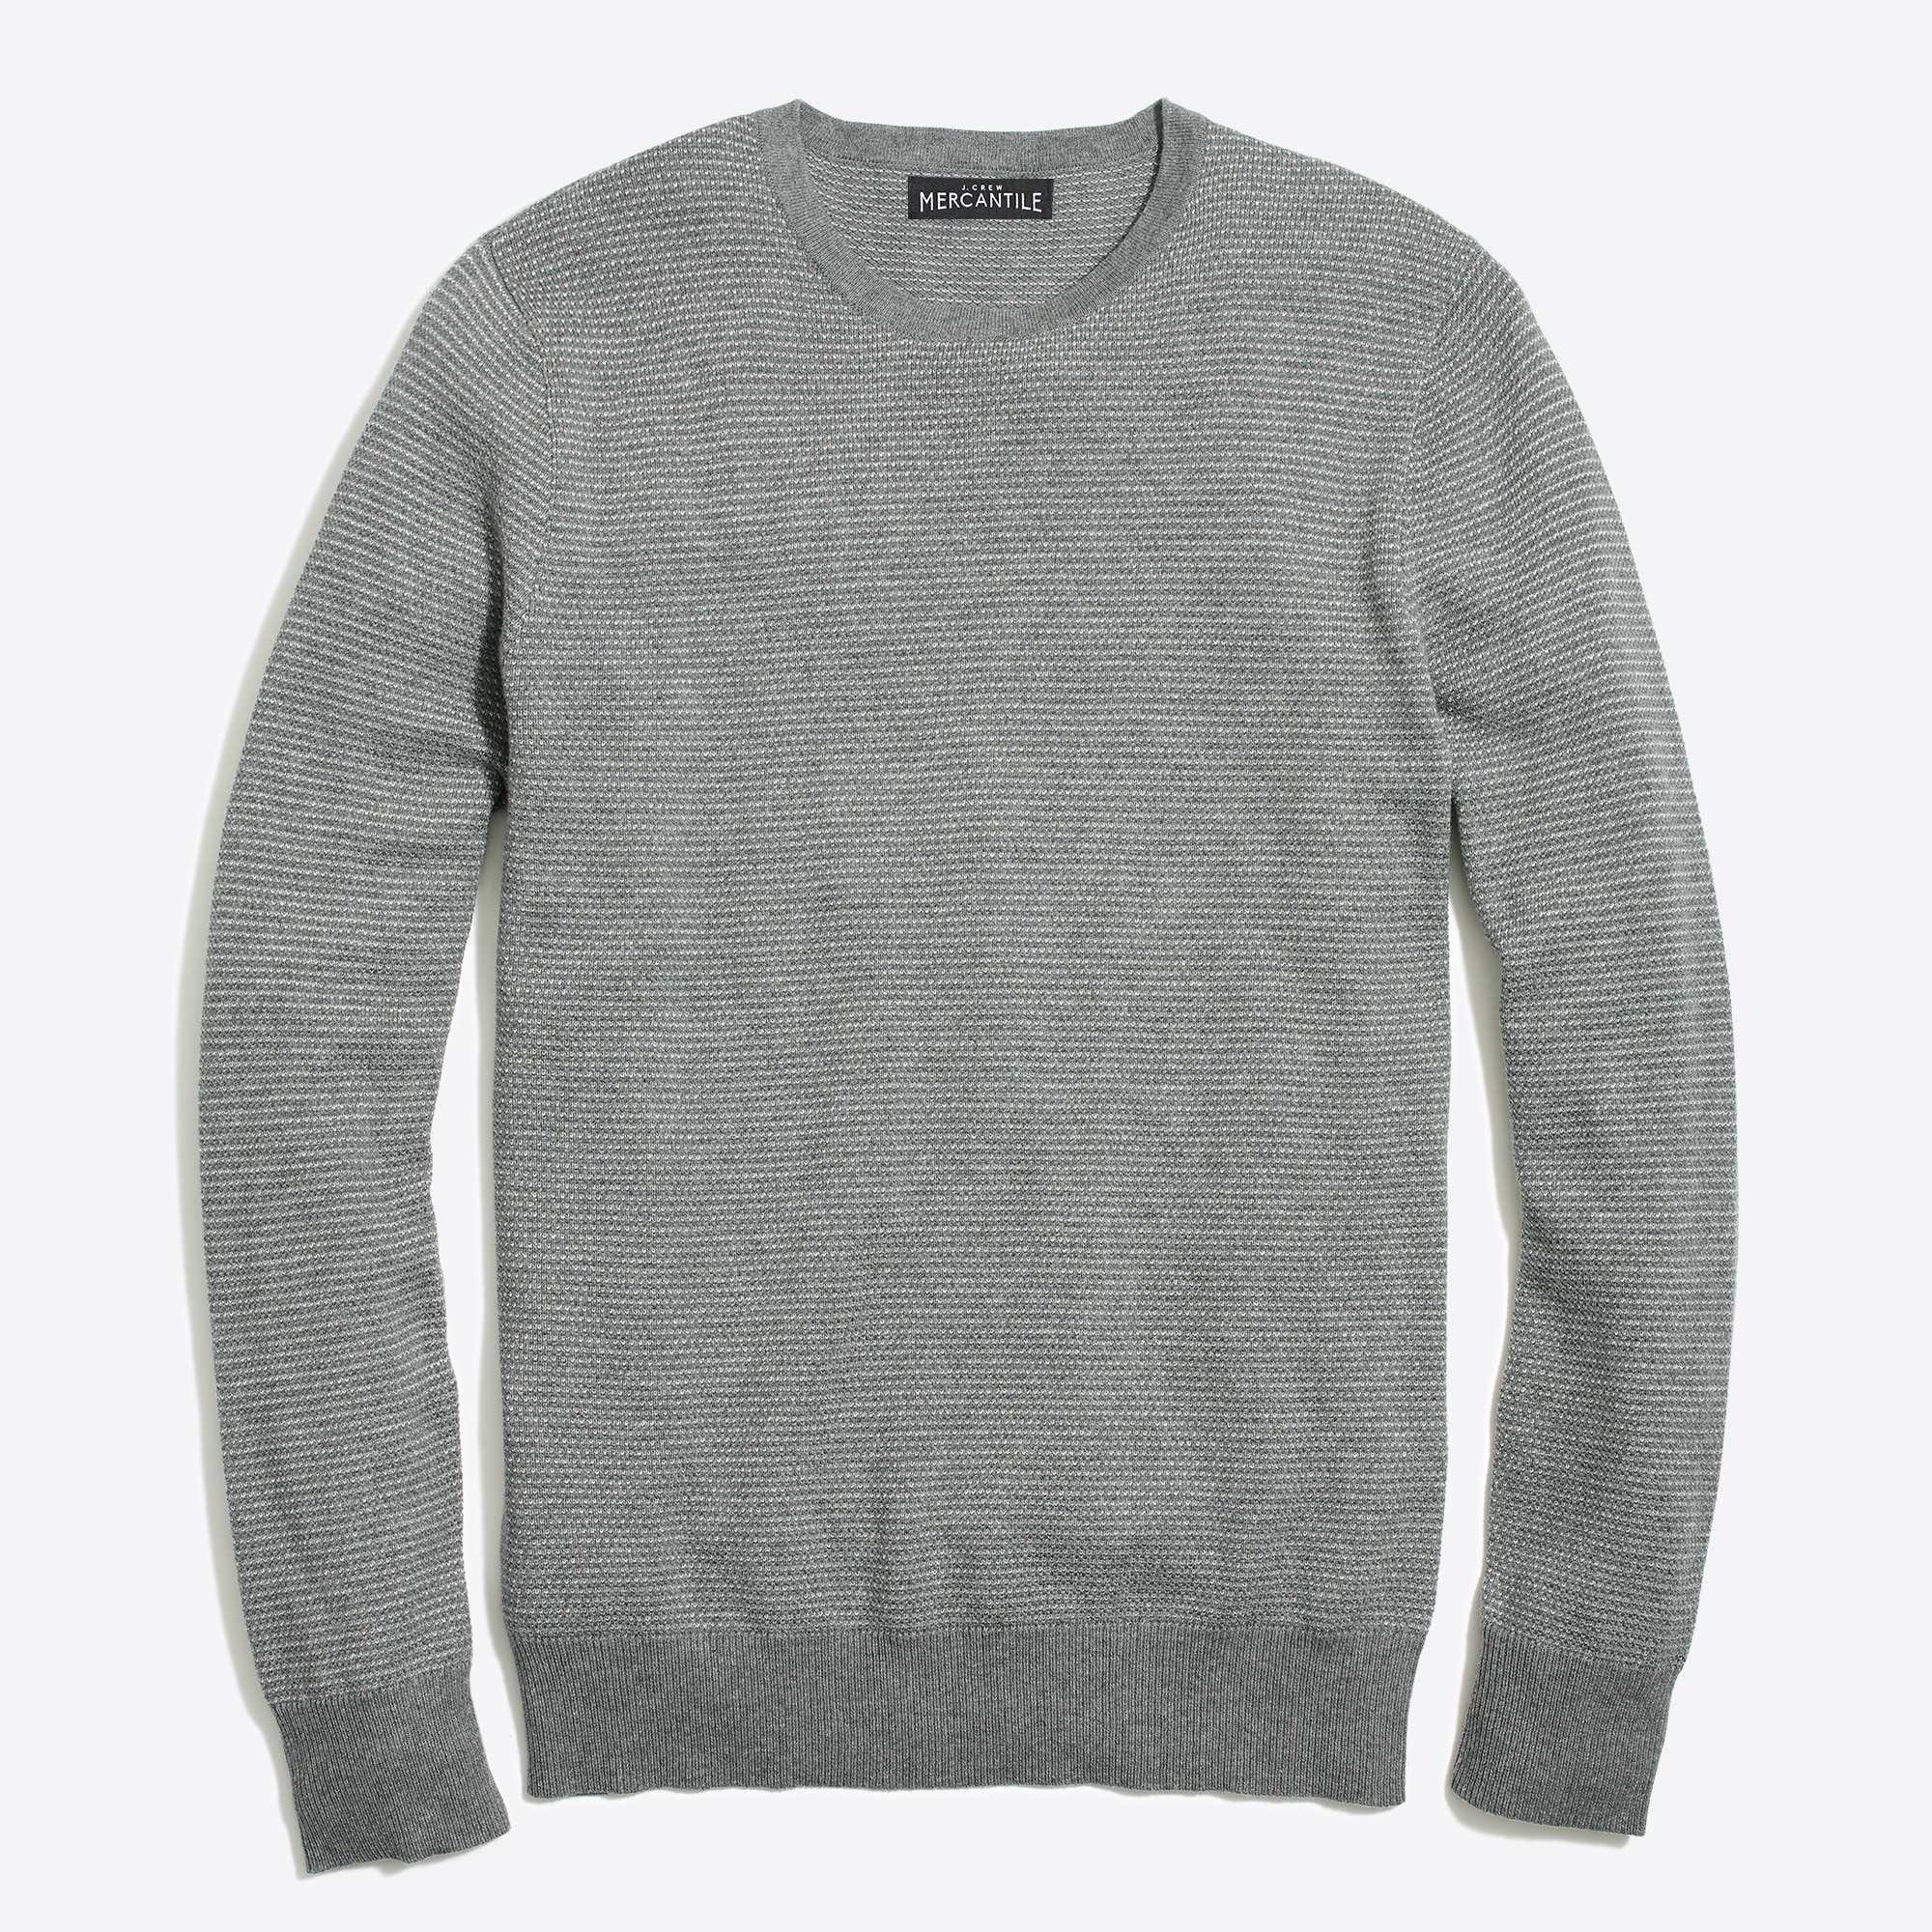 Image 2 for Slim-fit cotton piqué sweater in birdseye